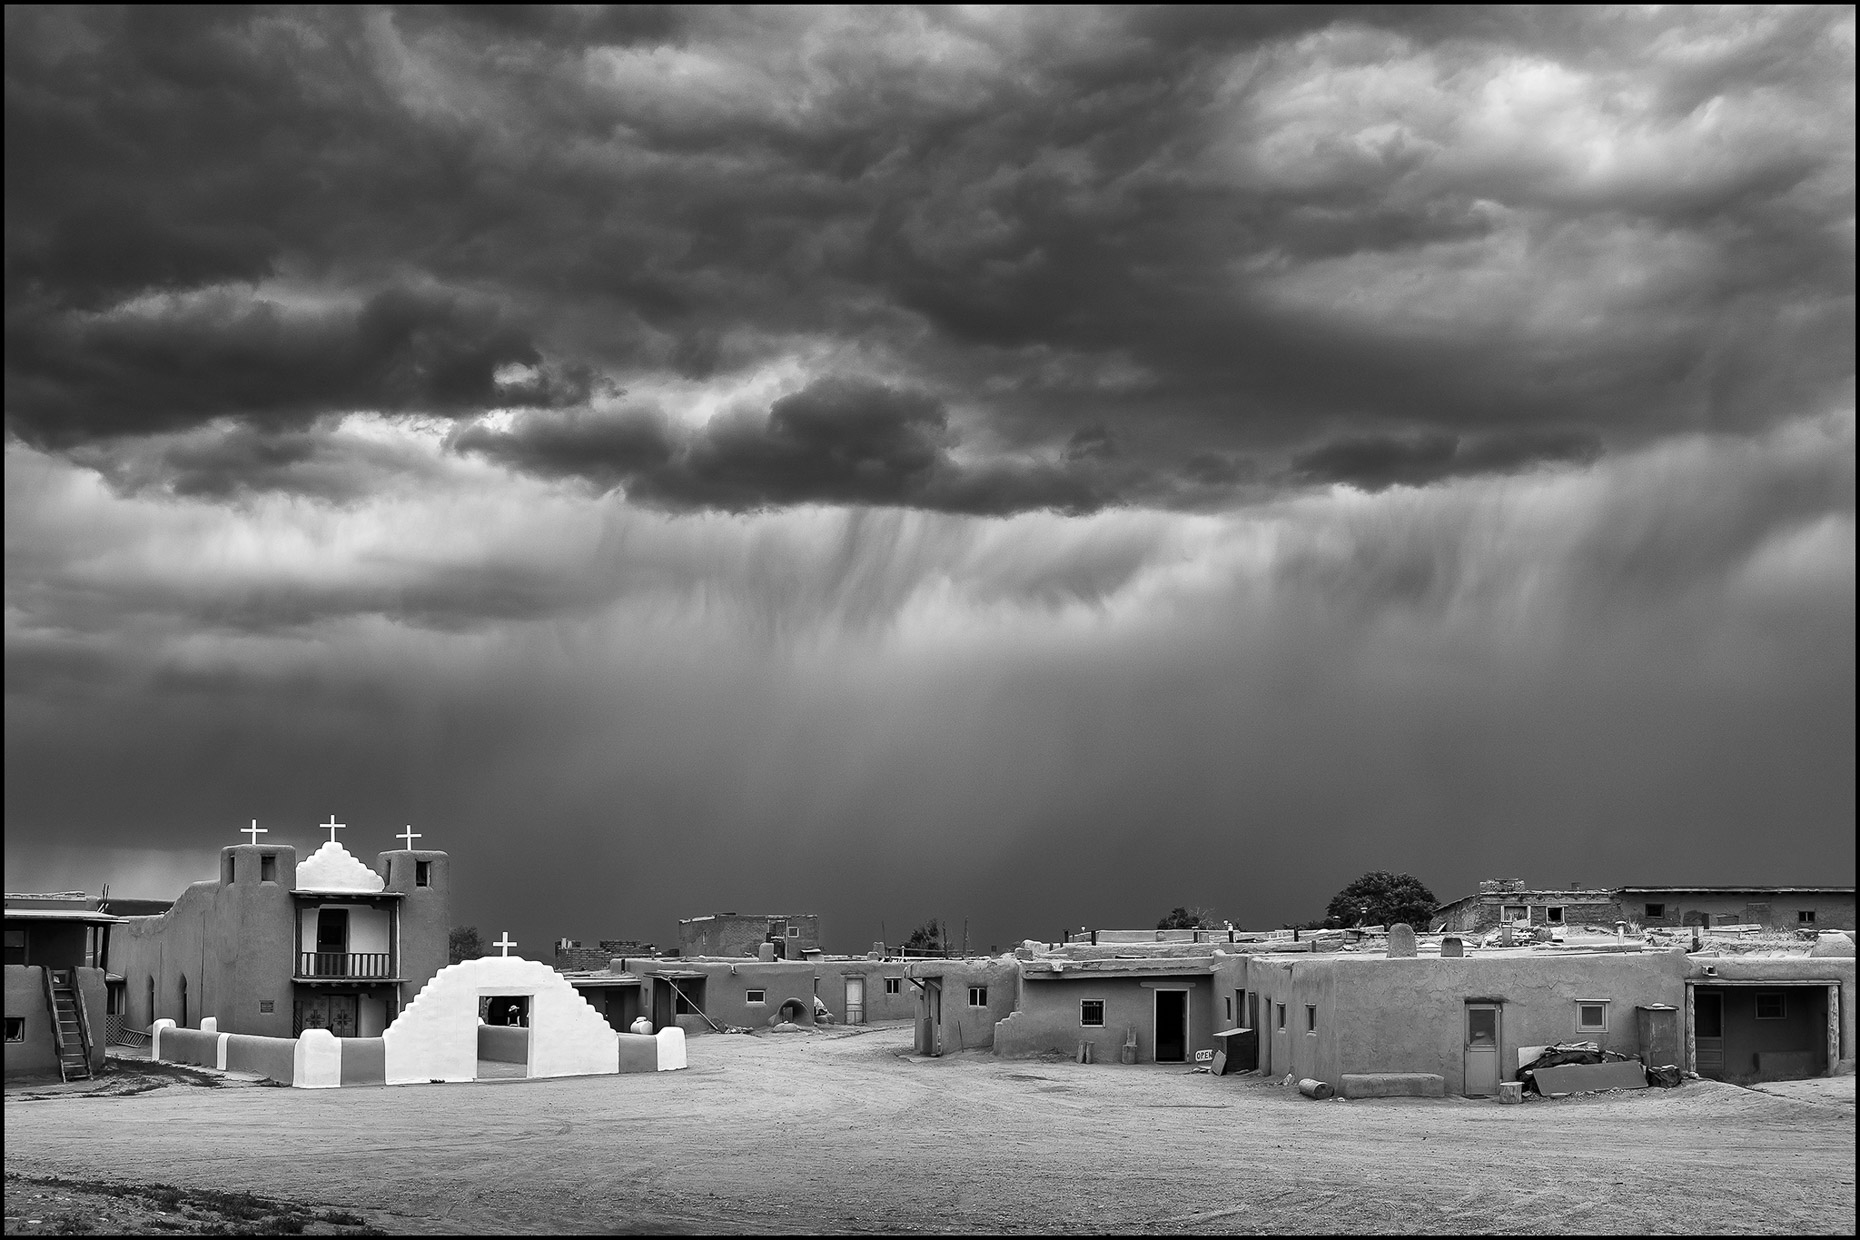 Mission Church, Taos Pueblo, New Mexico, USA